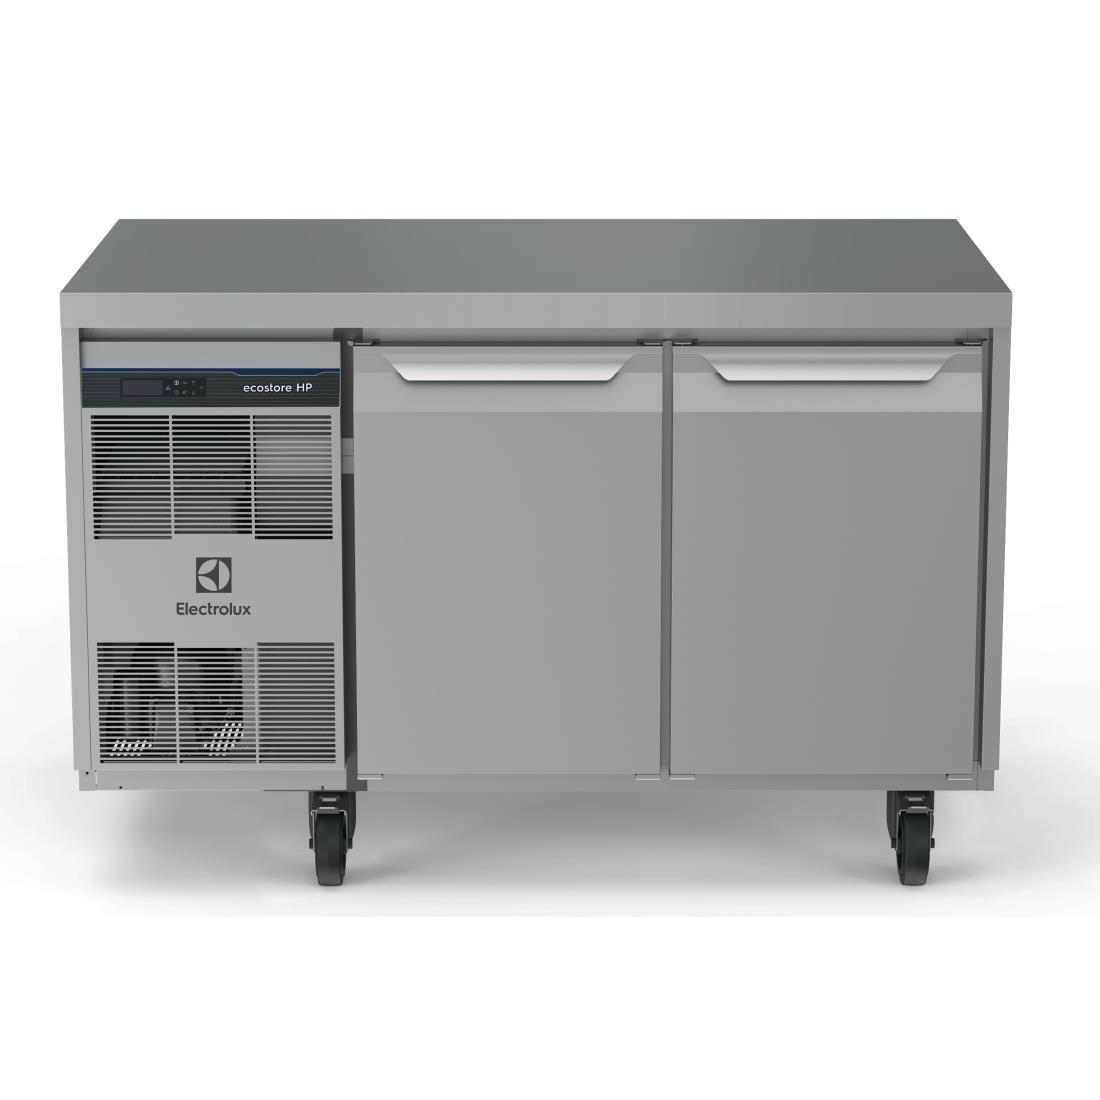 Electrolux ecostore HP 2 Door Counter Fridge EH2HBAAG